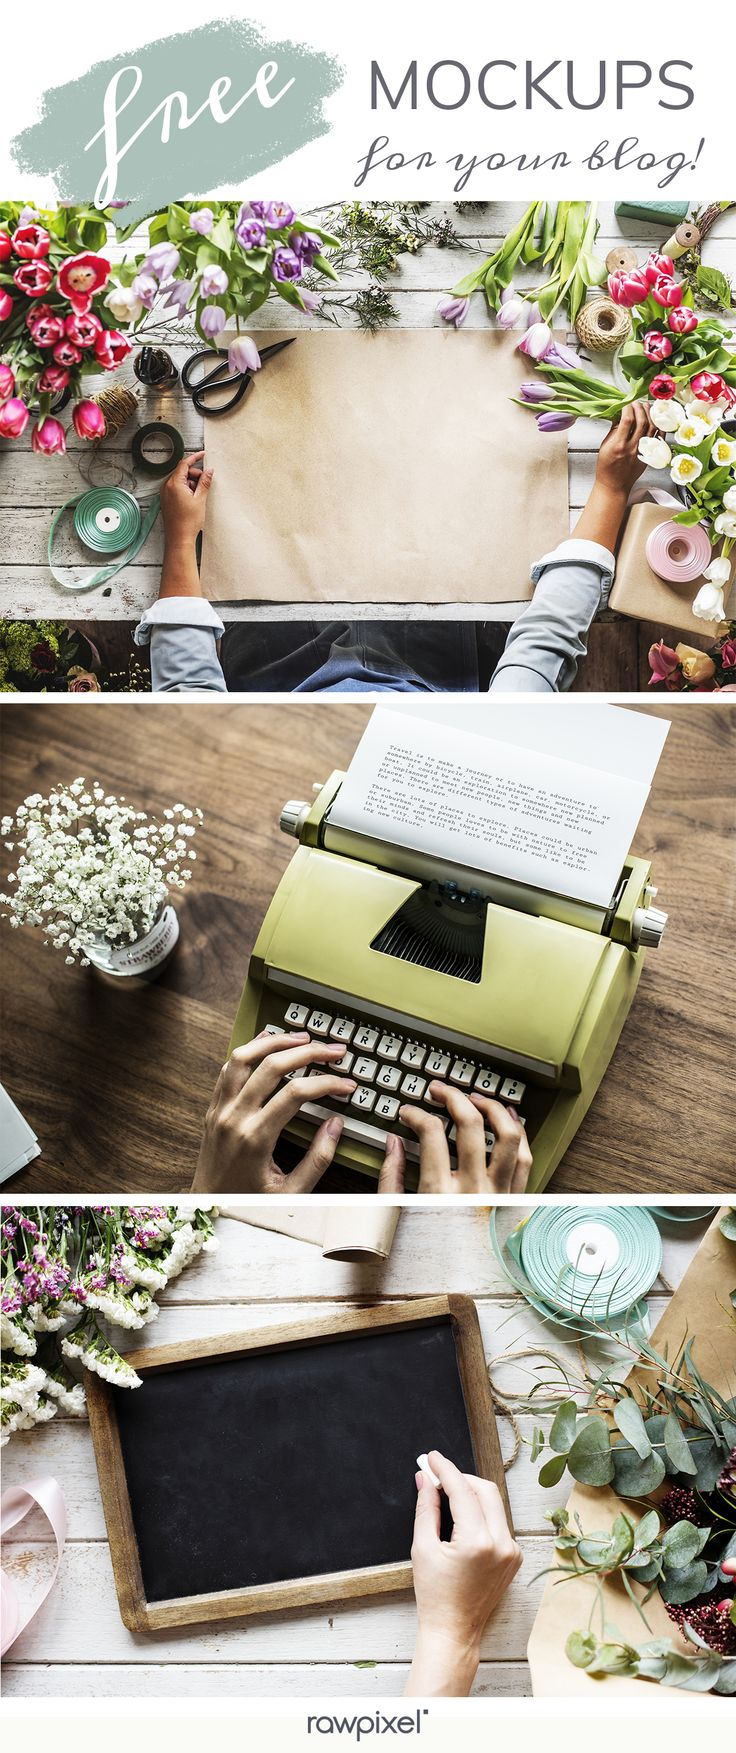 Download free and premium royalty-free mockups of  paper, typewriters, devices, …